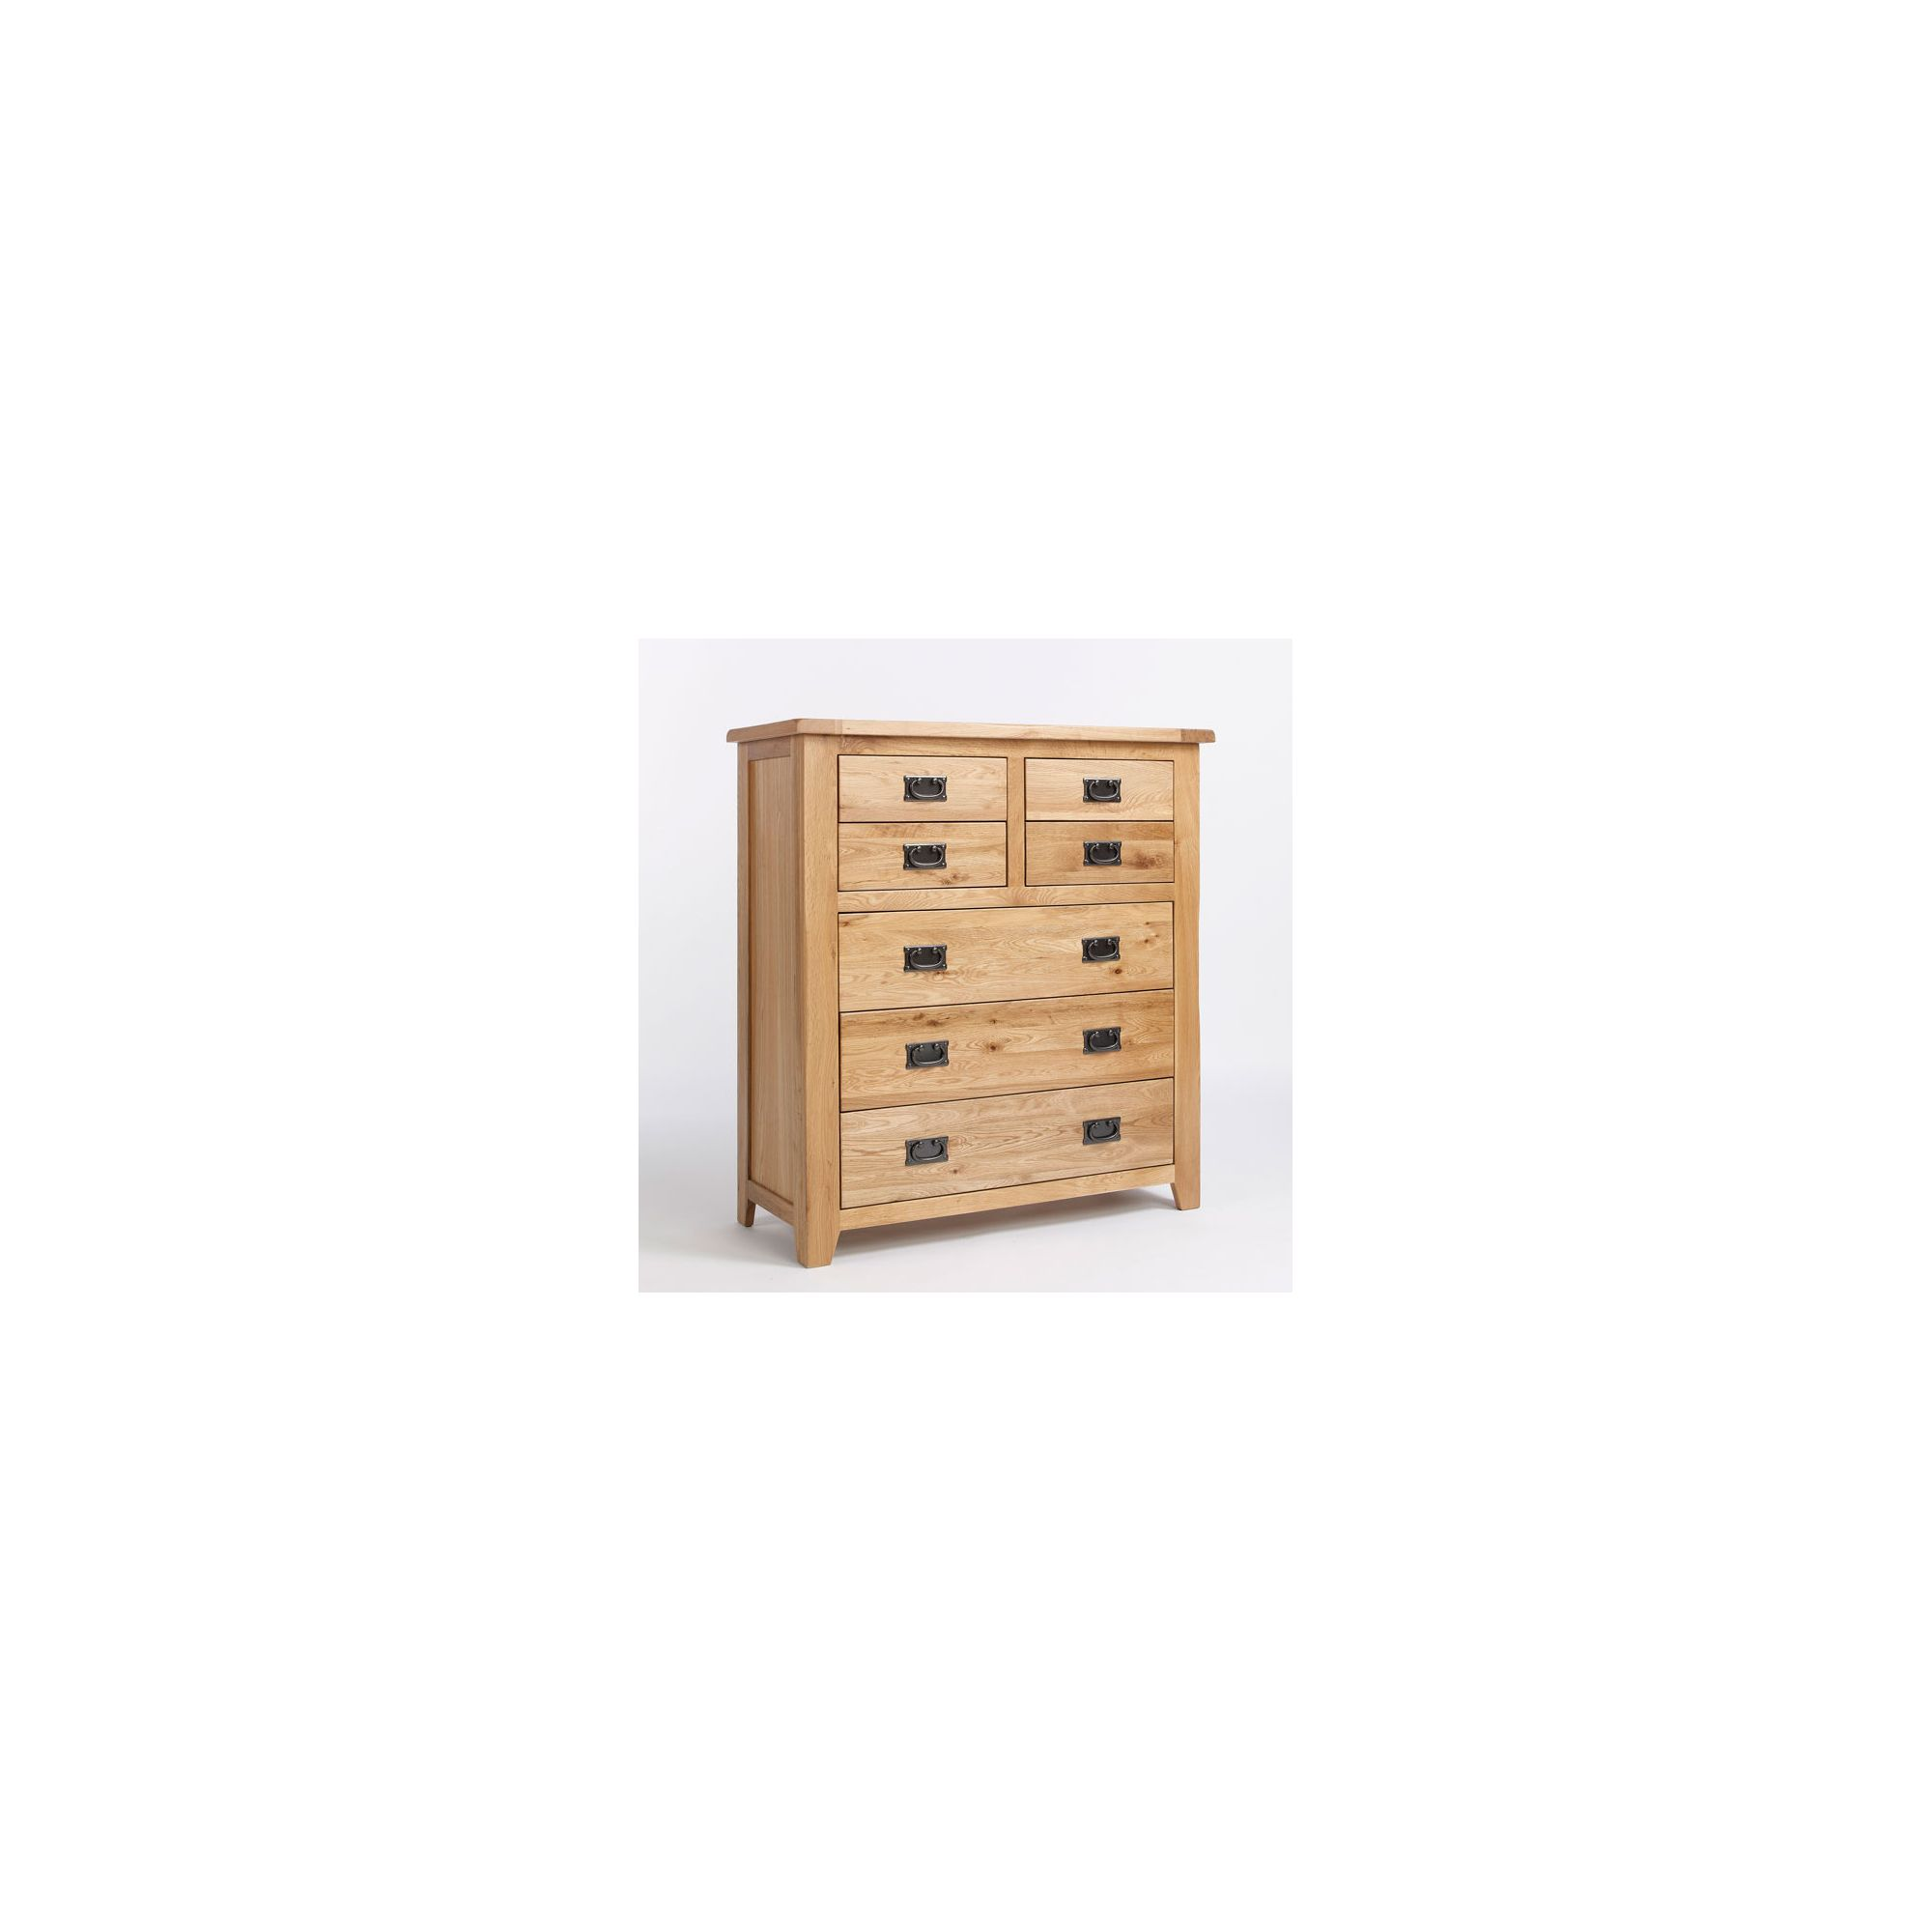 Ametis Westbury Reclaimed Oak Four Over Three Drawer Chest at Tesco Direct